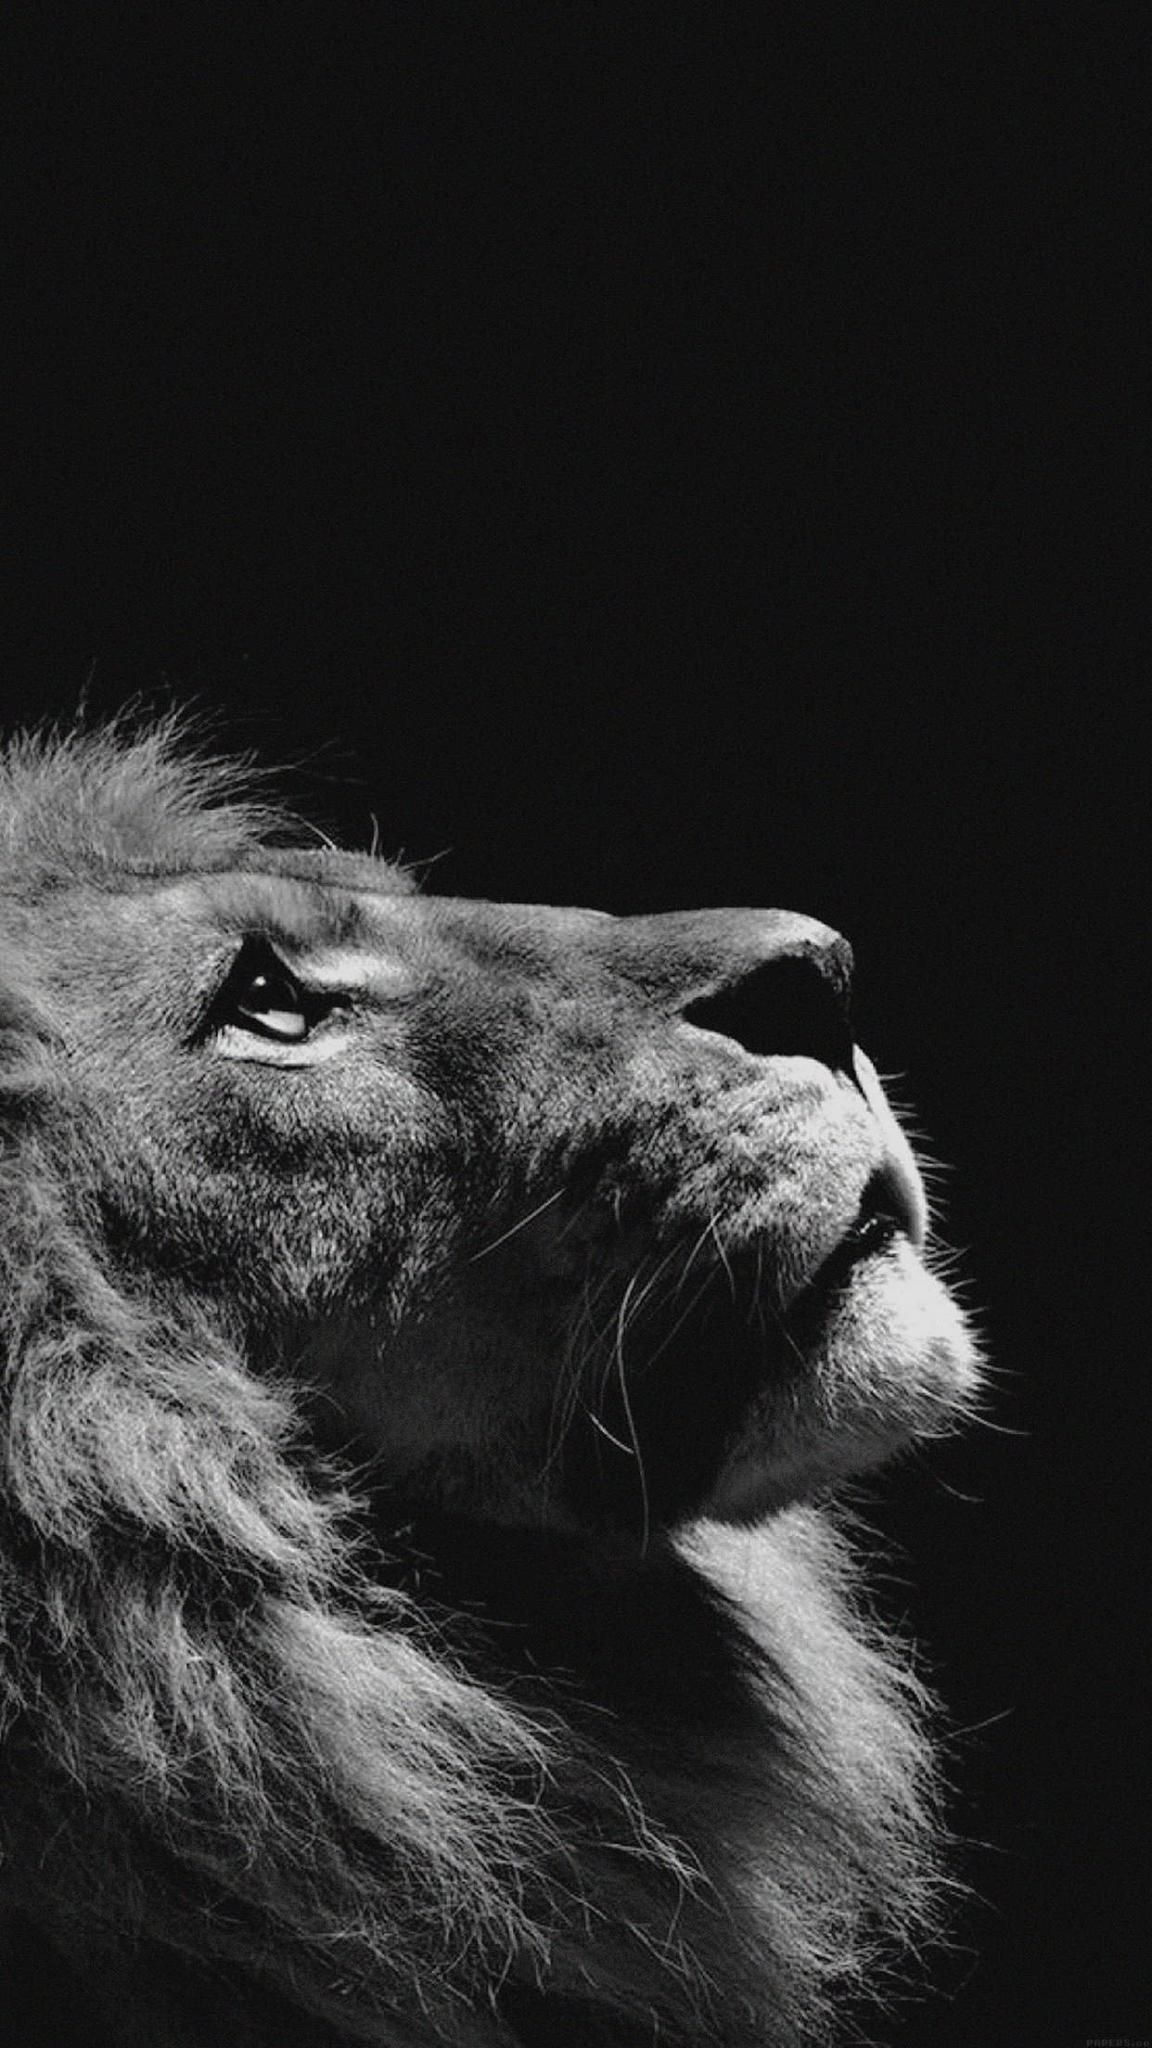 Wallpaper For Iphone X Animal Iphone Wallpaper Hd Image For Best Hd Wallpaper For Apple Iphone 7 Plus Lion Looking Sky Sfondi Sfondo Con Animali Sfondo Iphone